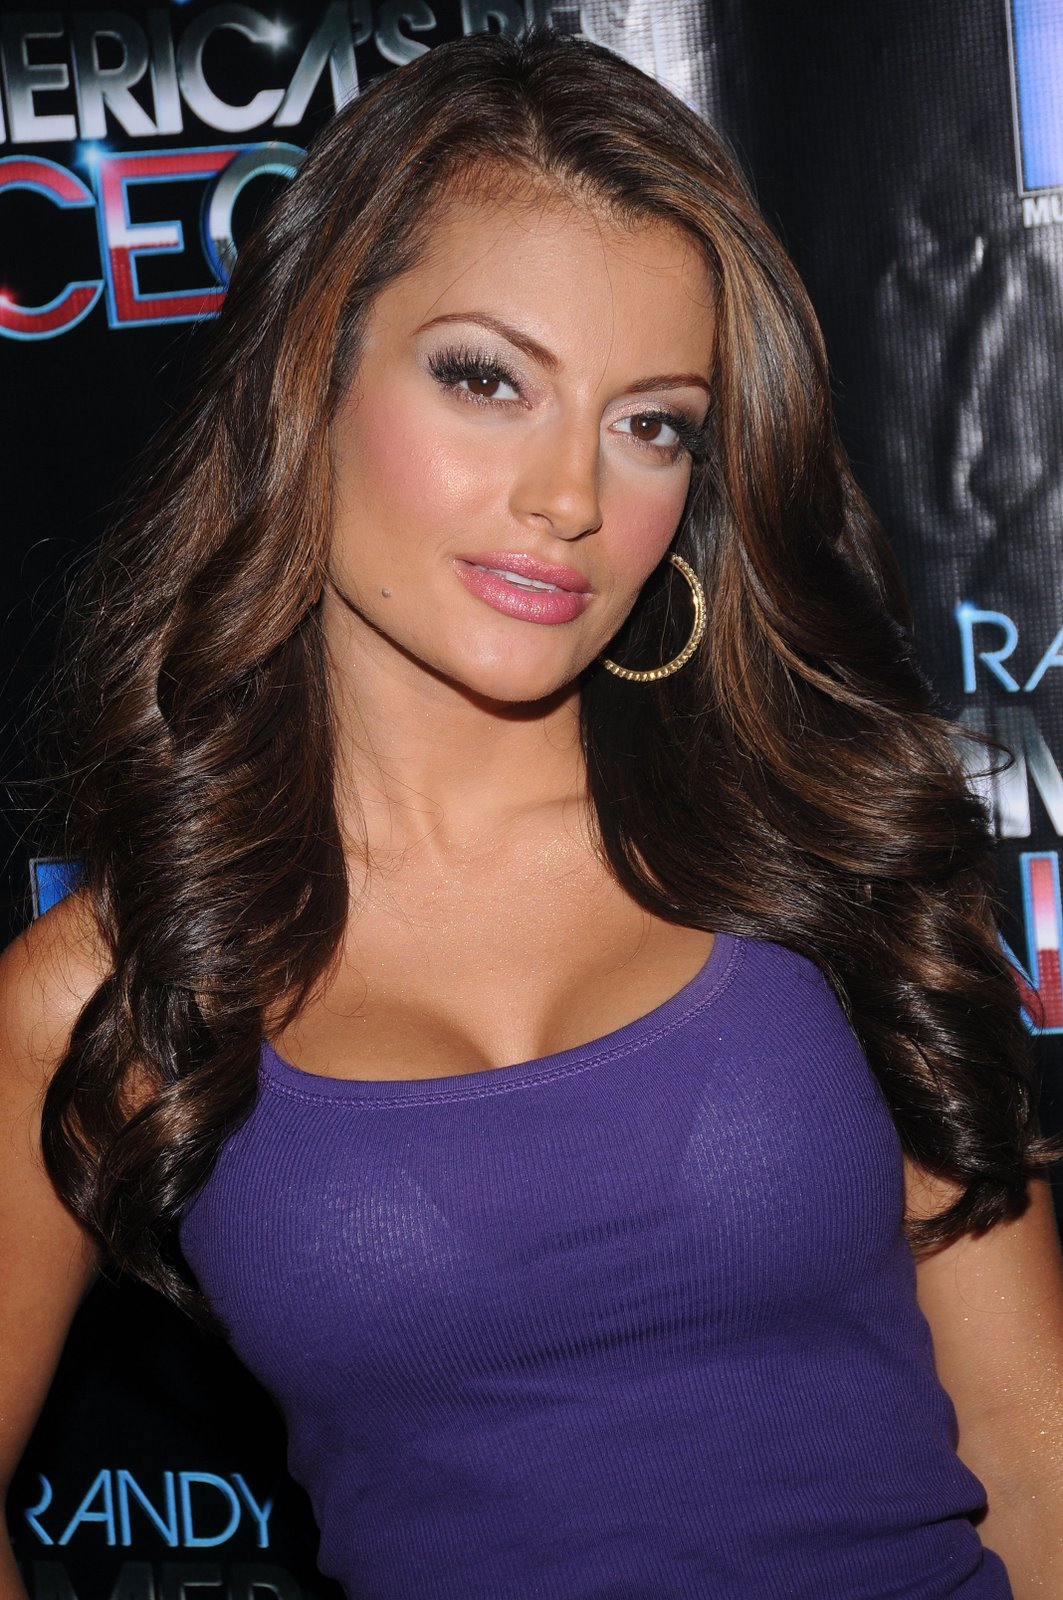 The 15 Sexiest Hosts from G4 TV Shows   Complex